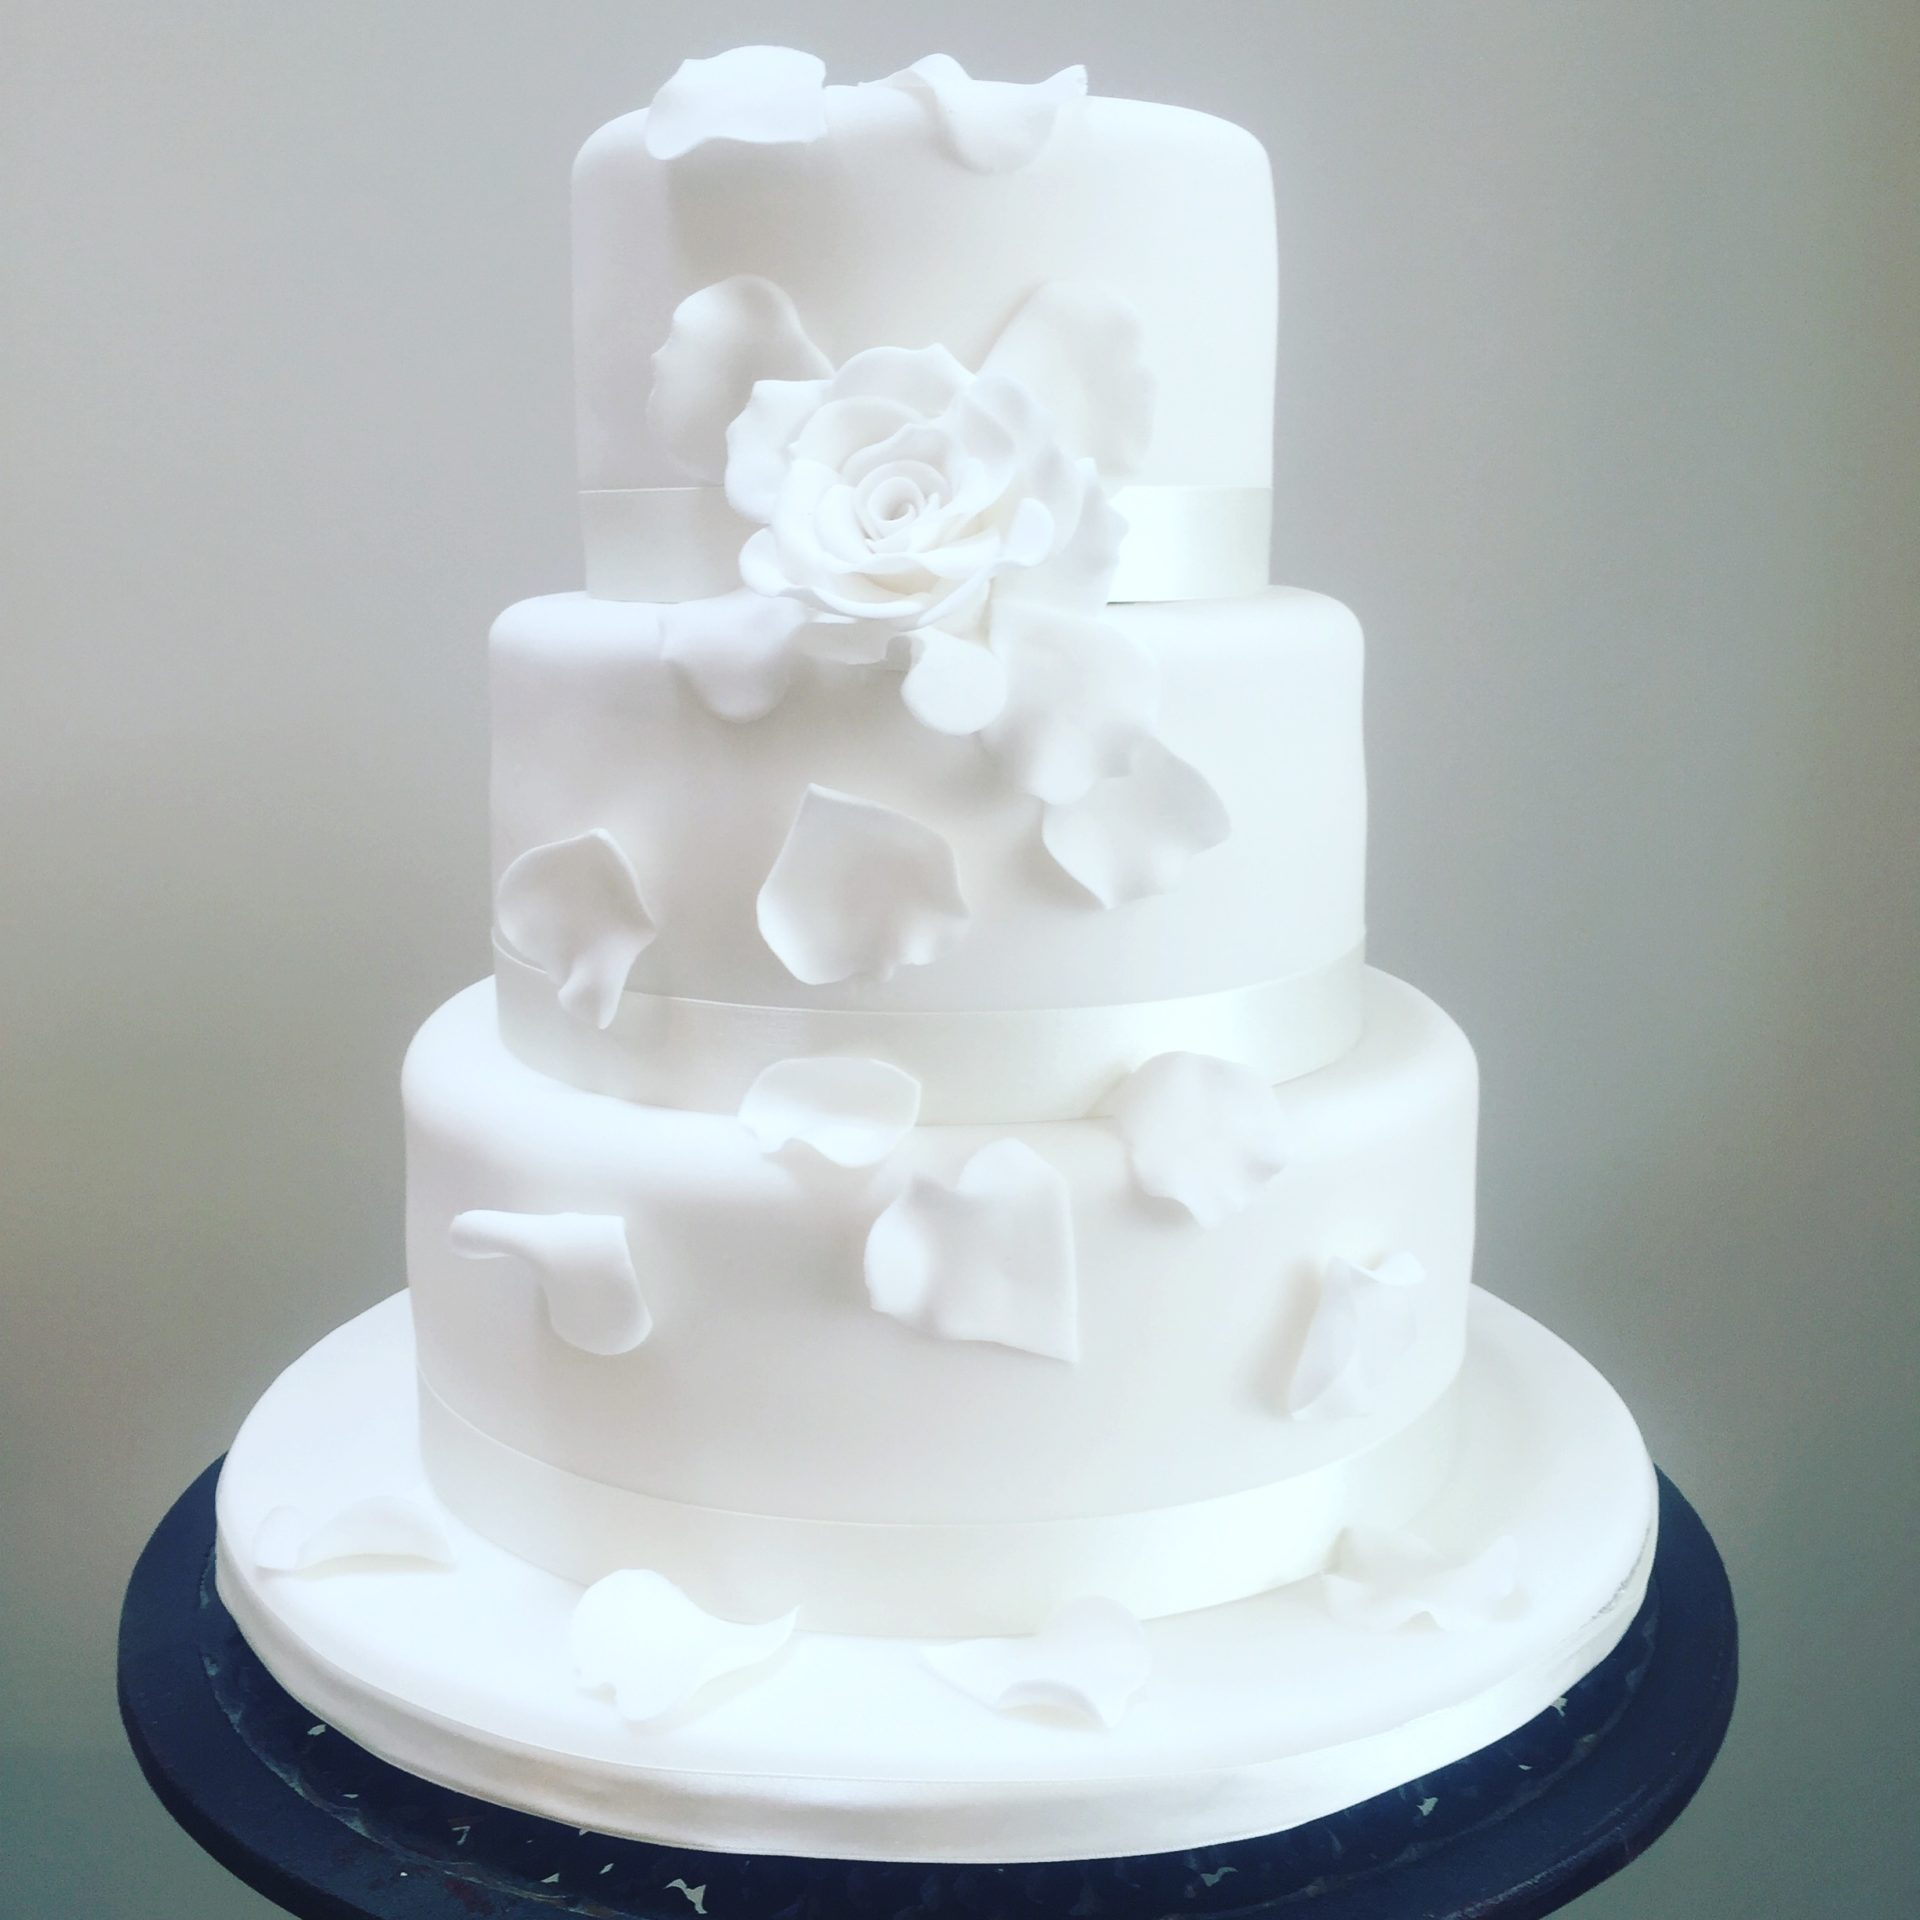 Tumbling Petals Wedding Cake